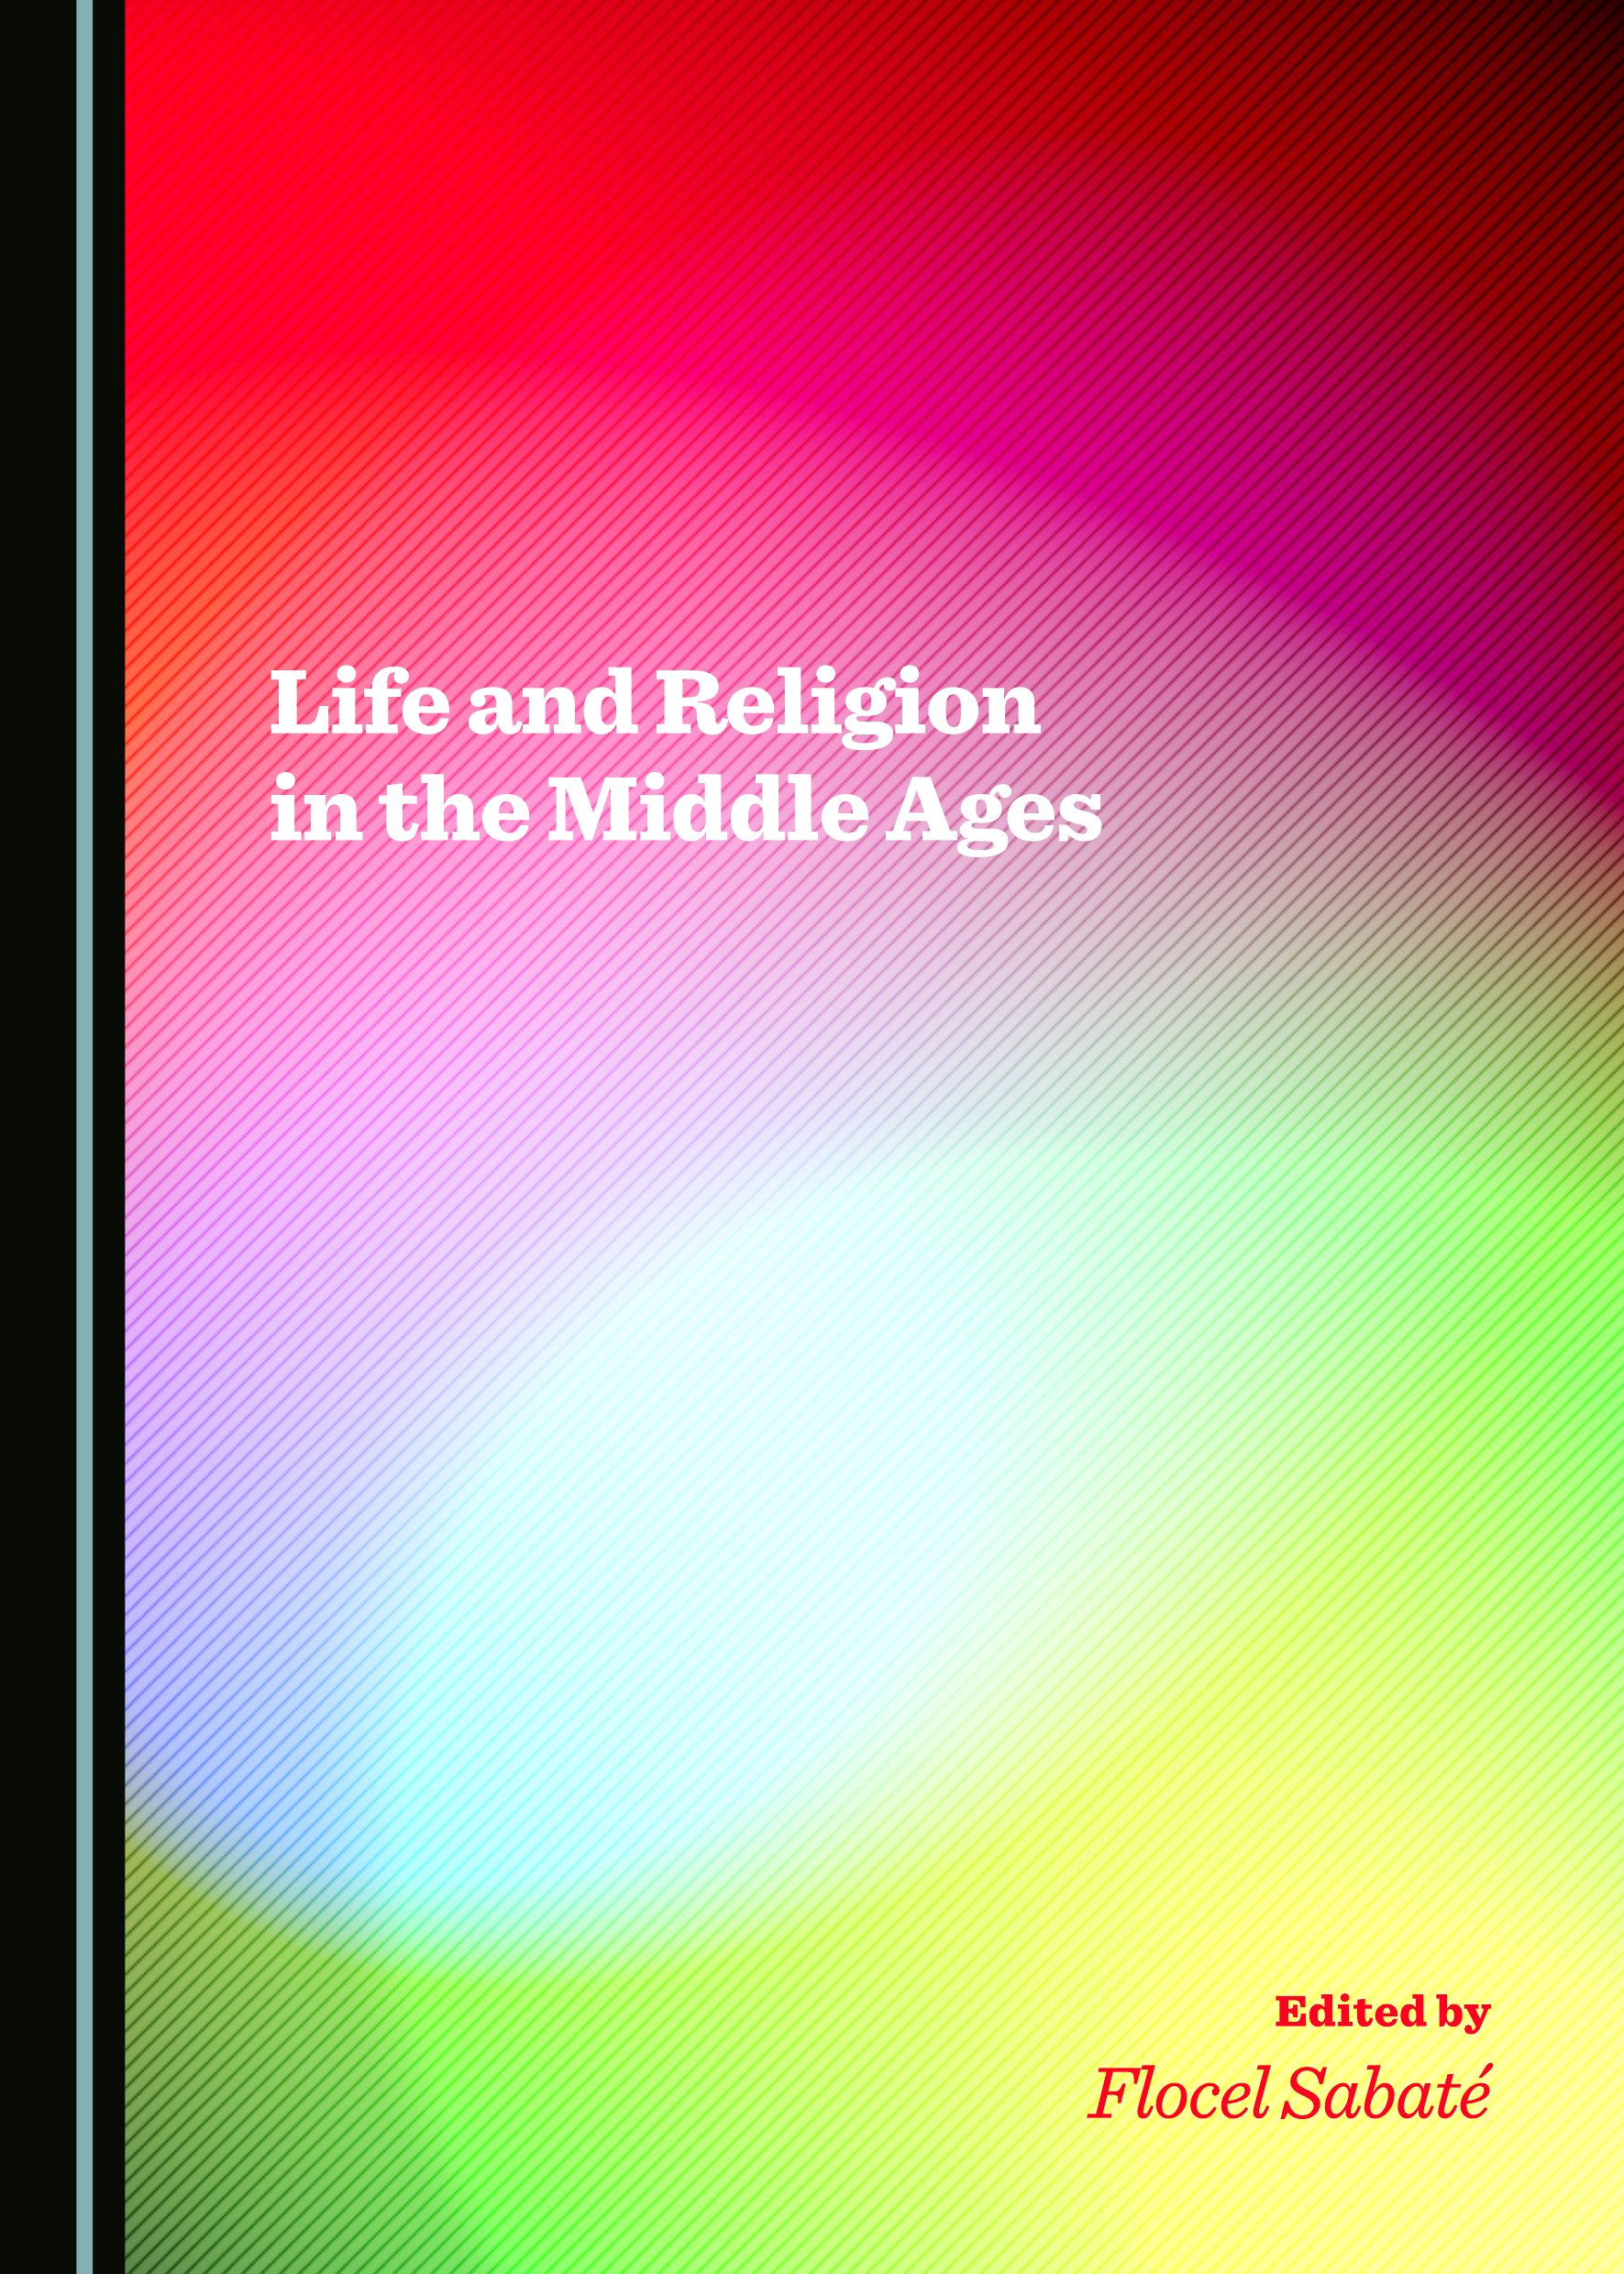 Life and Religion in the Middle Ages